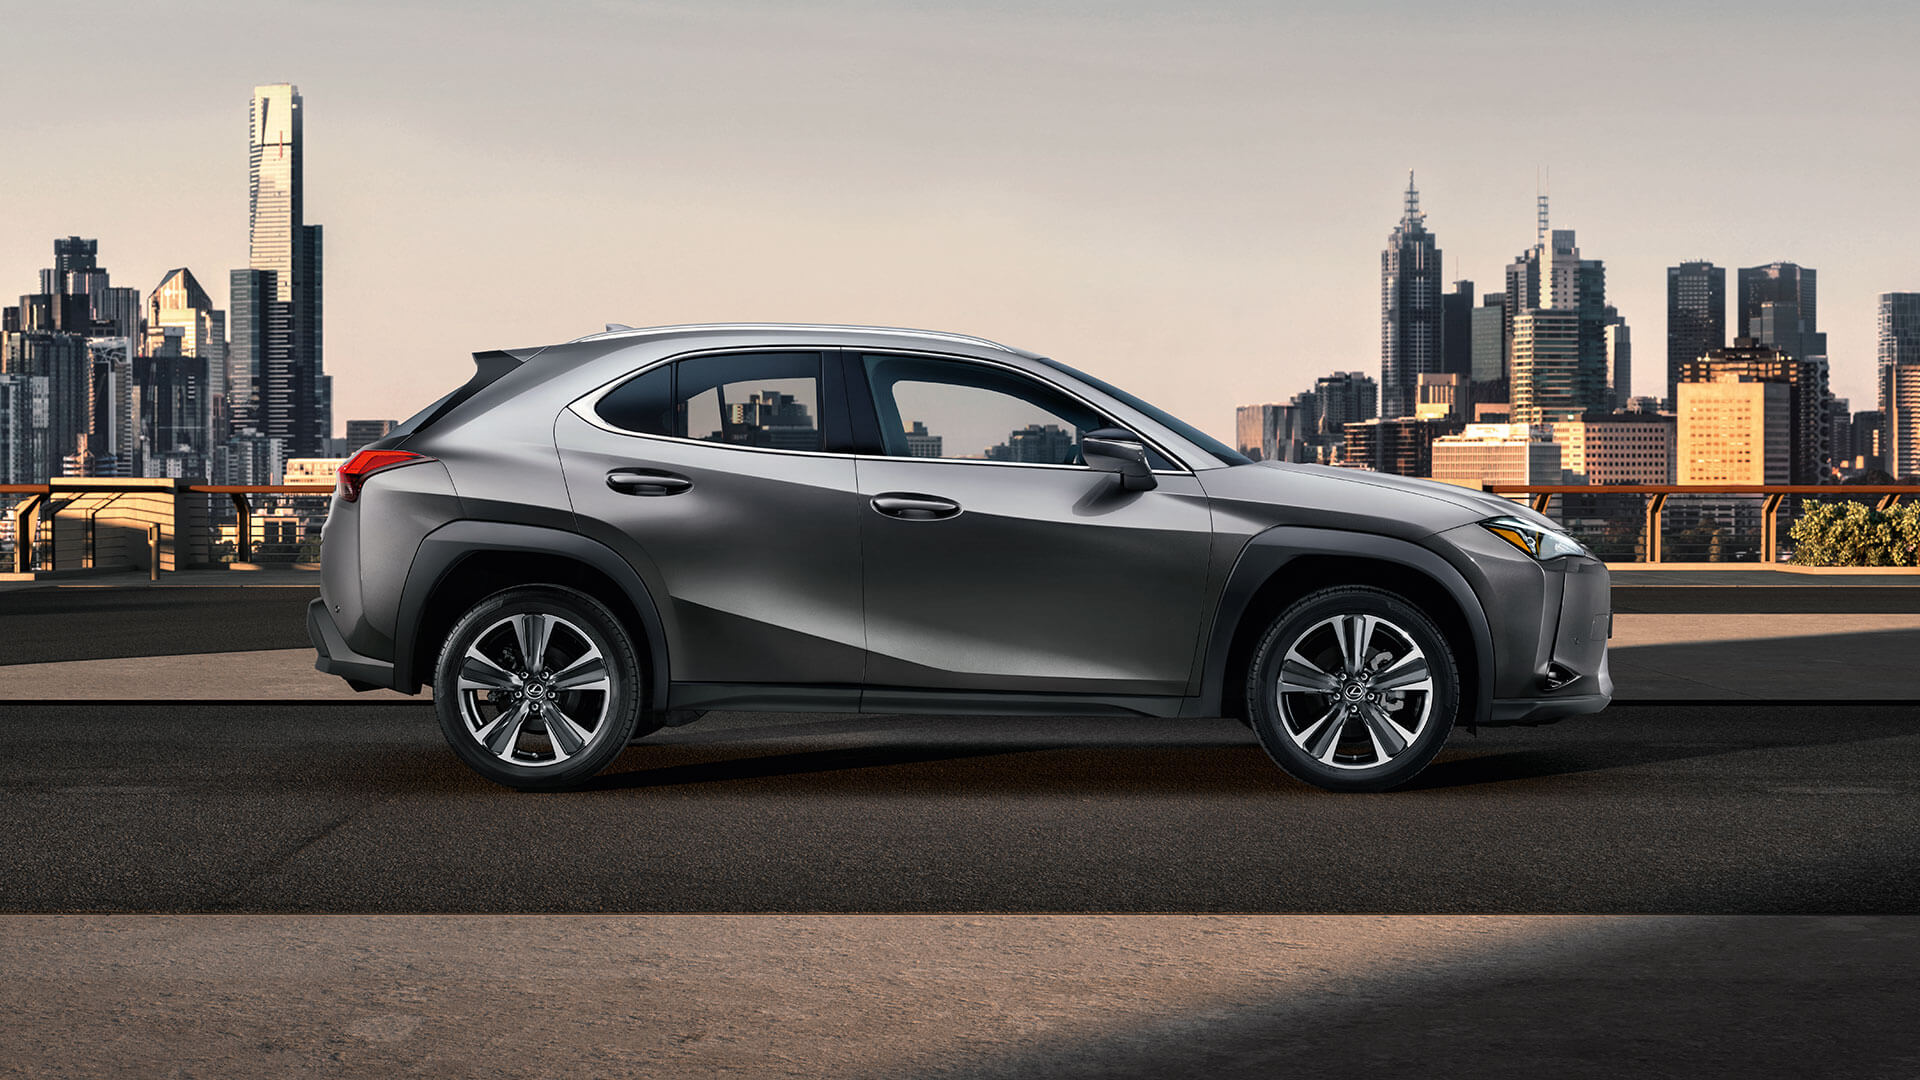 2018 lexus ux 250h next steps personalise